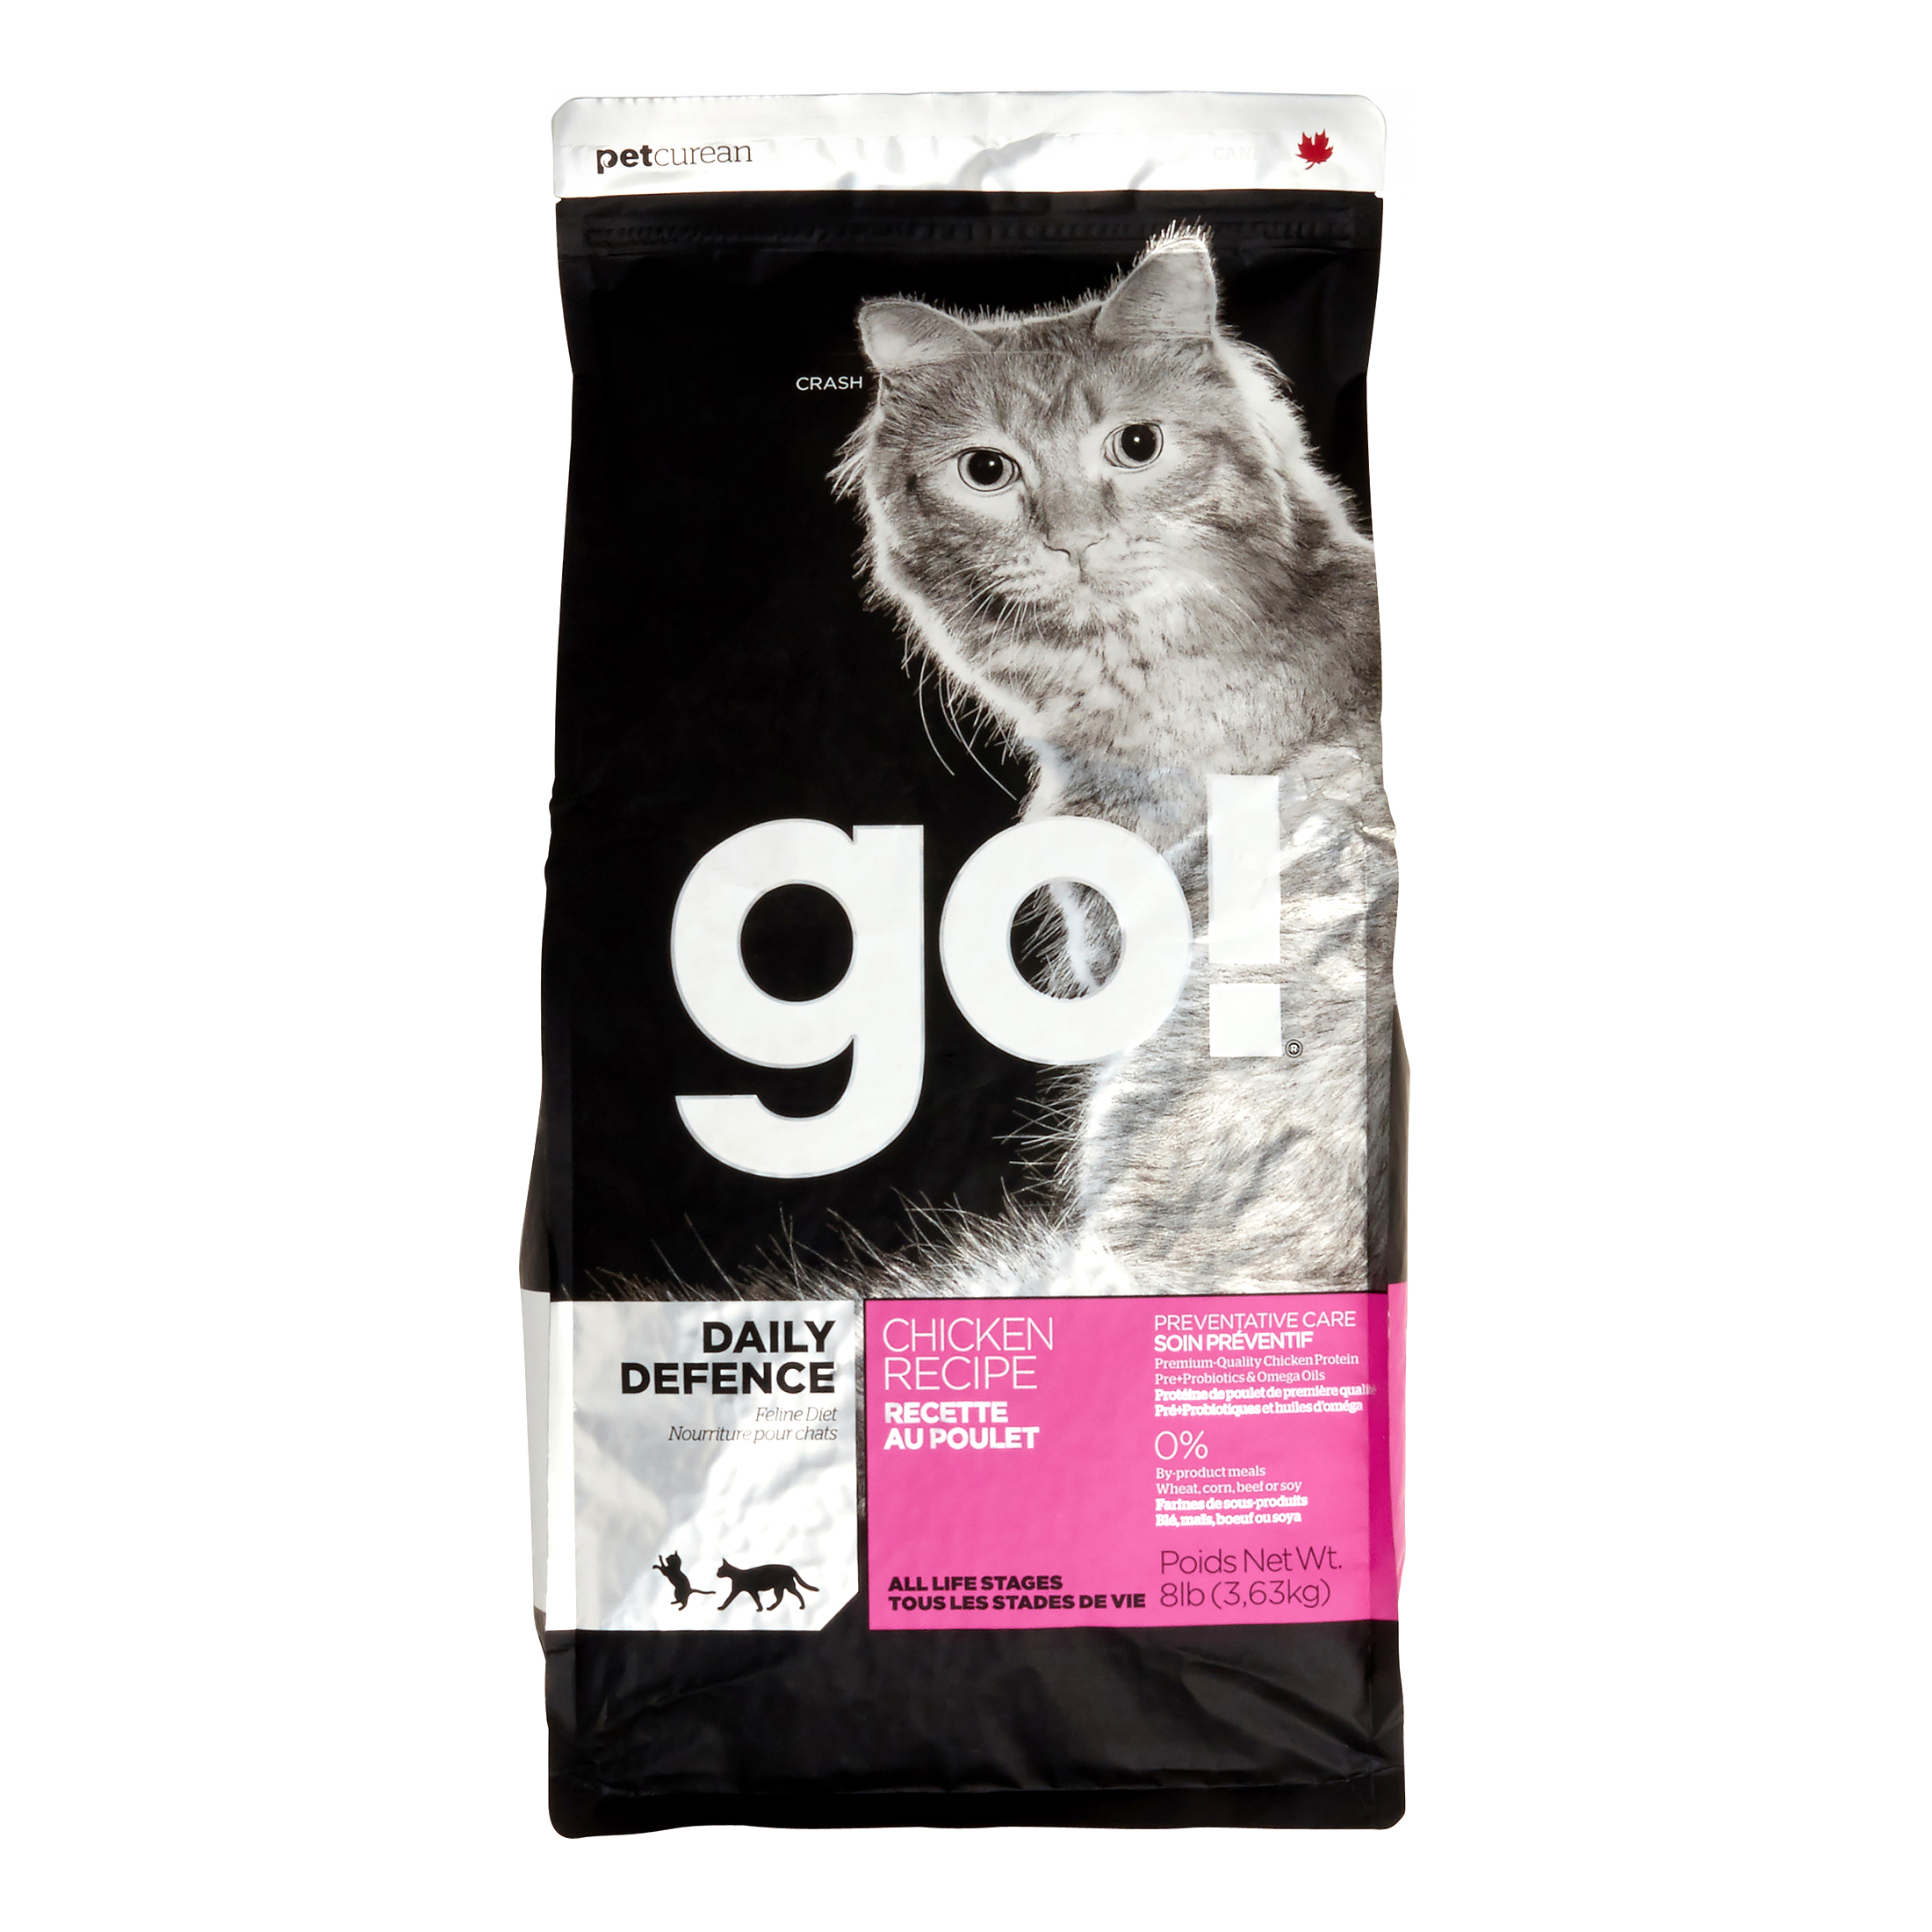 Go! Daily Defence Chicken Dry Cat Food, 16-lb